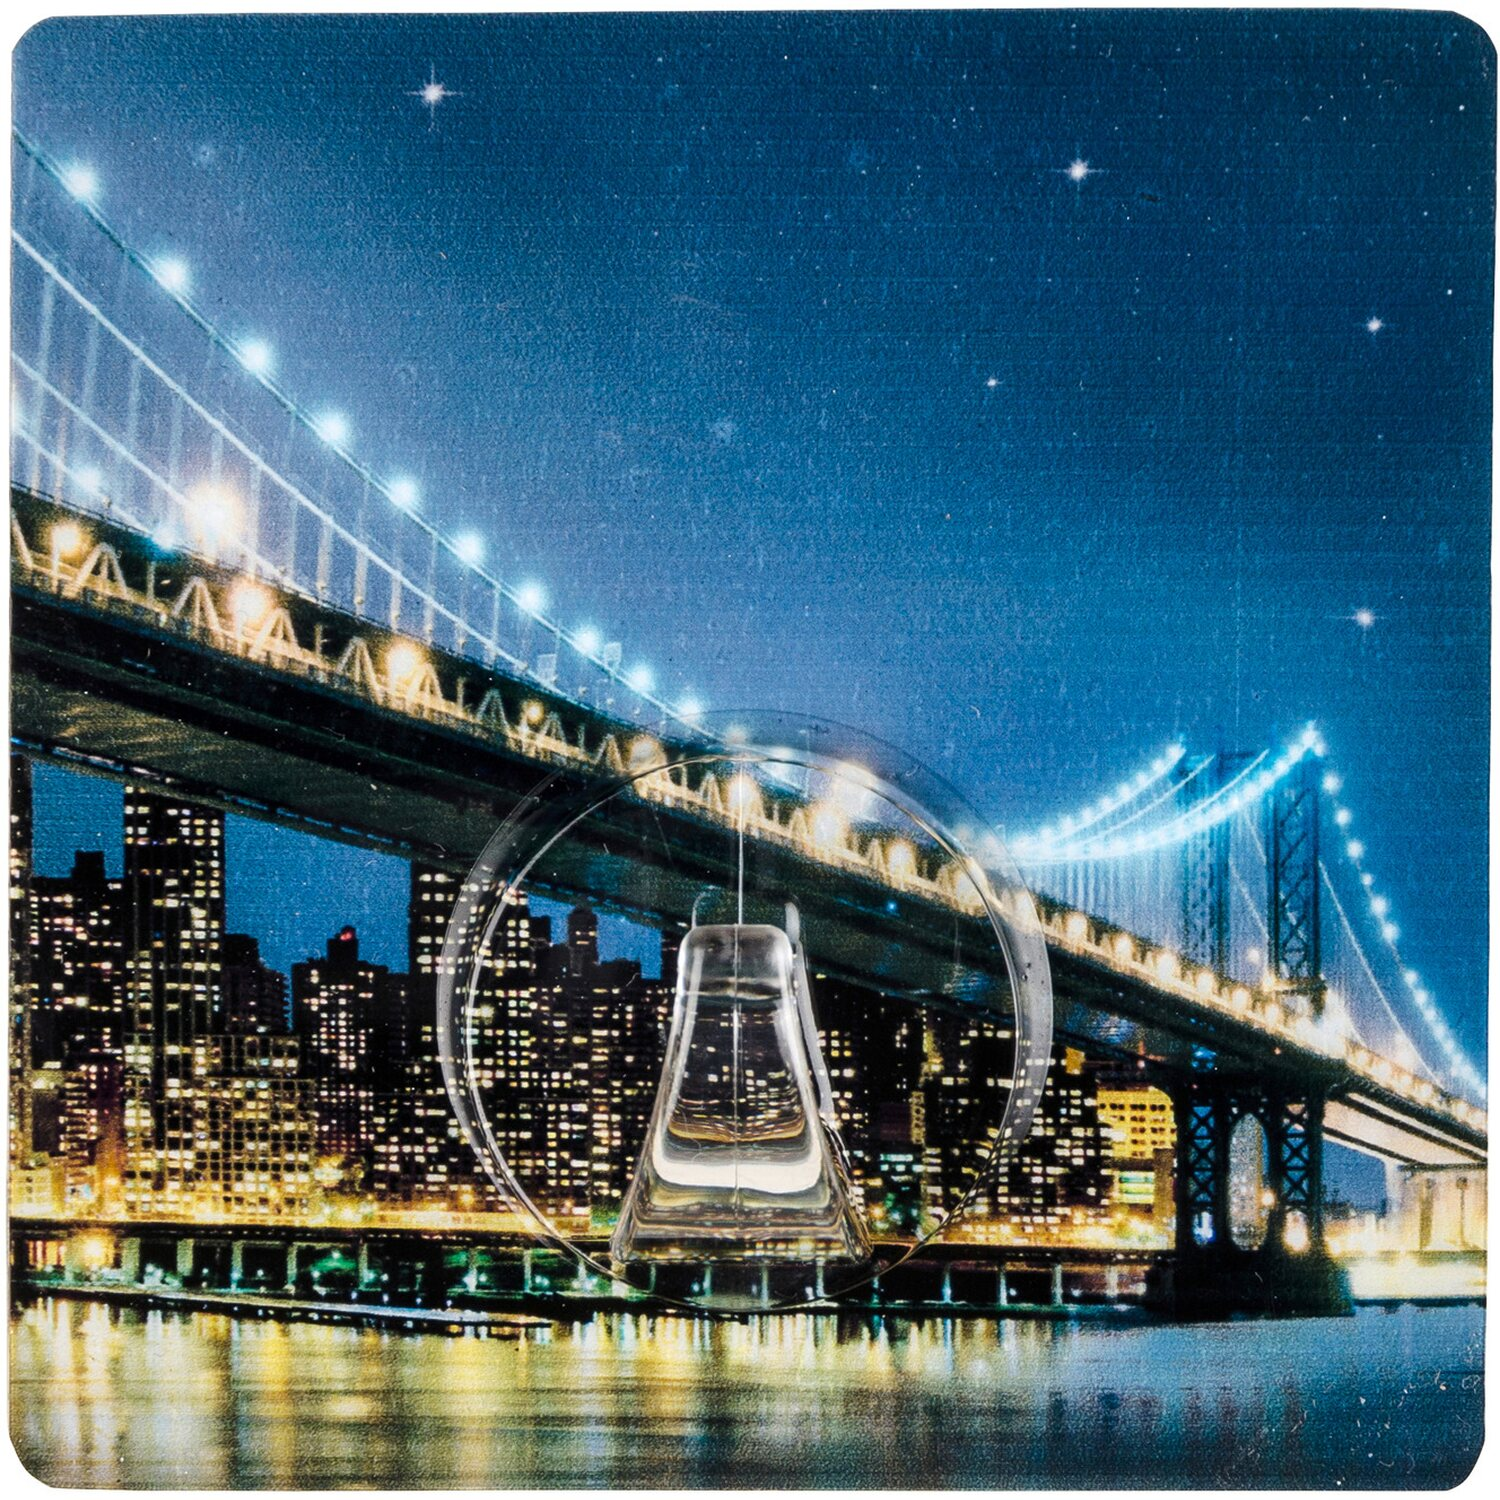 Wenko Static-Loc Wandhaken Uno Brooklyn Bridge kaufen bei OBI